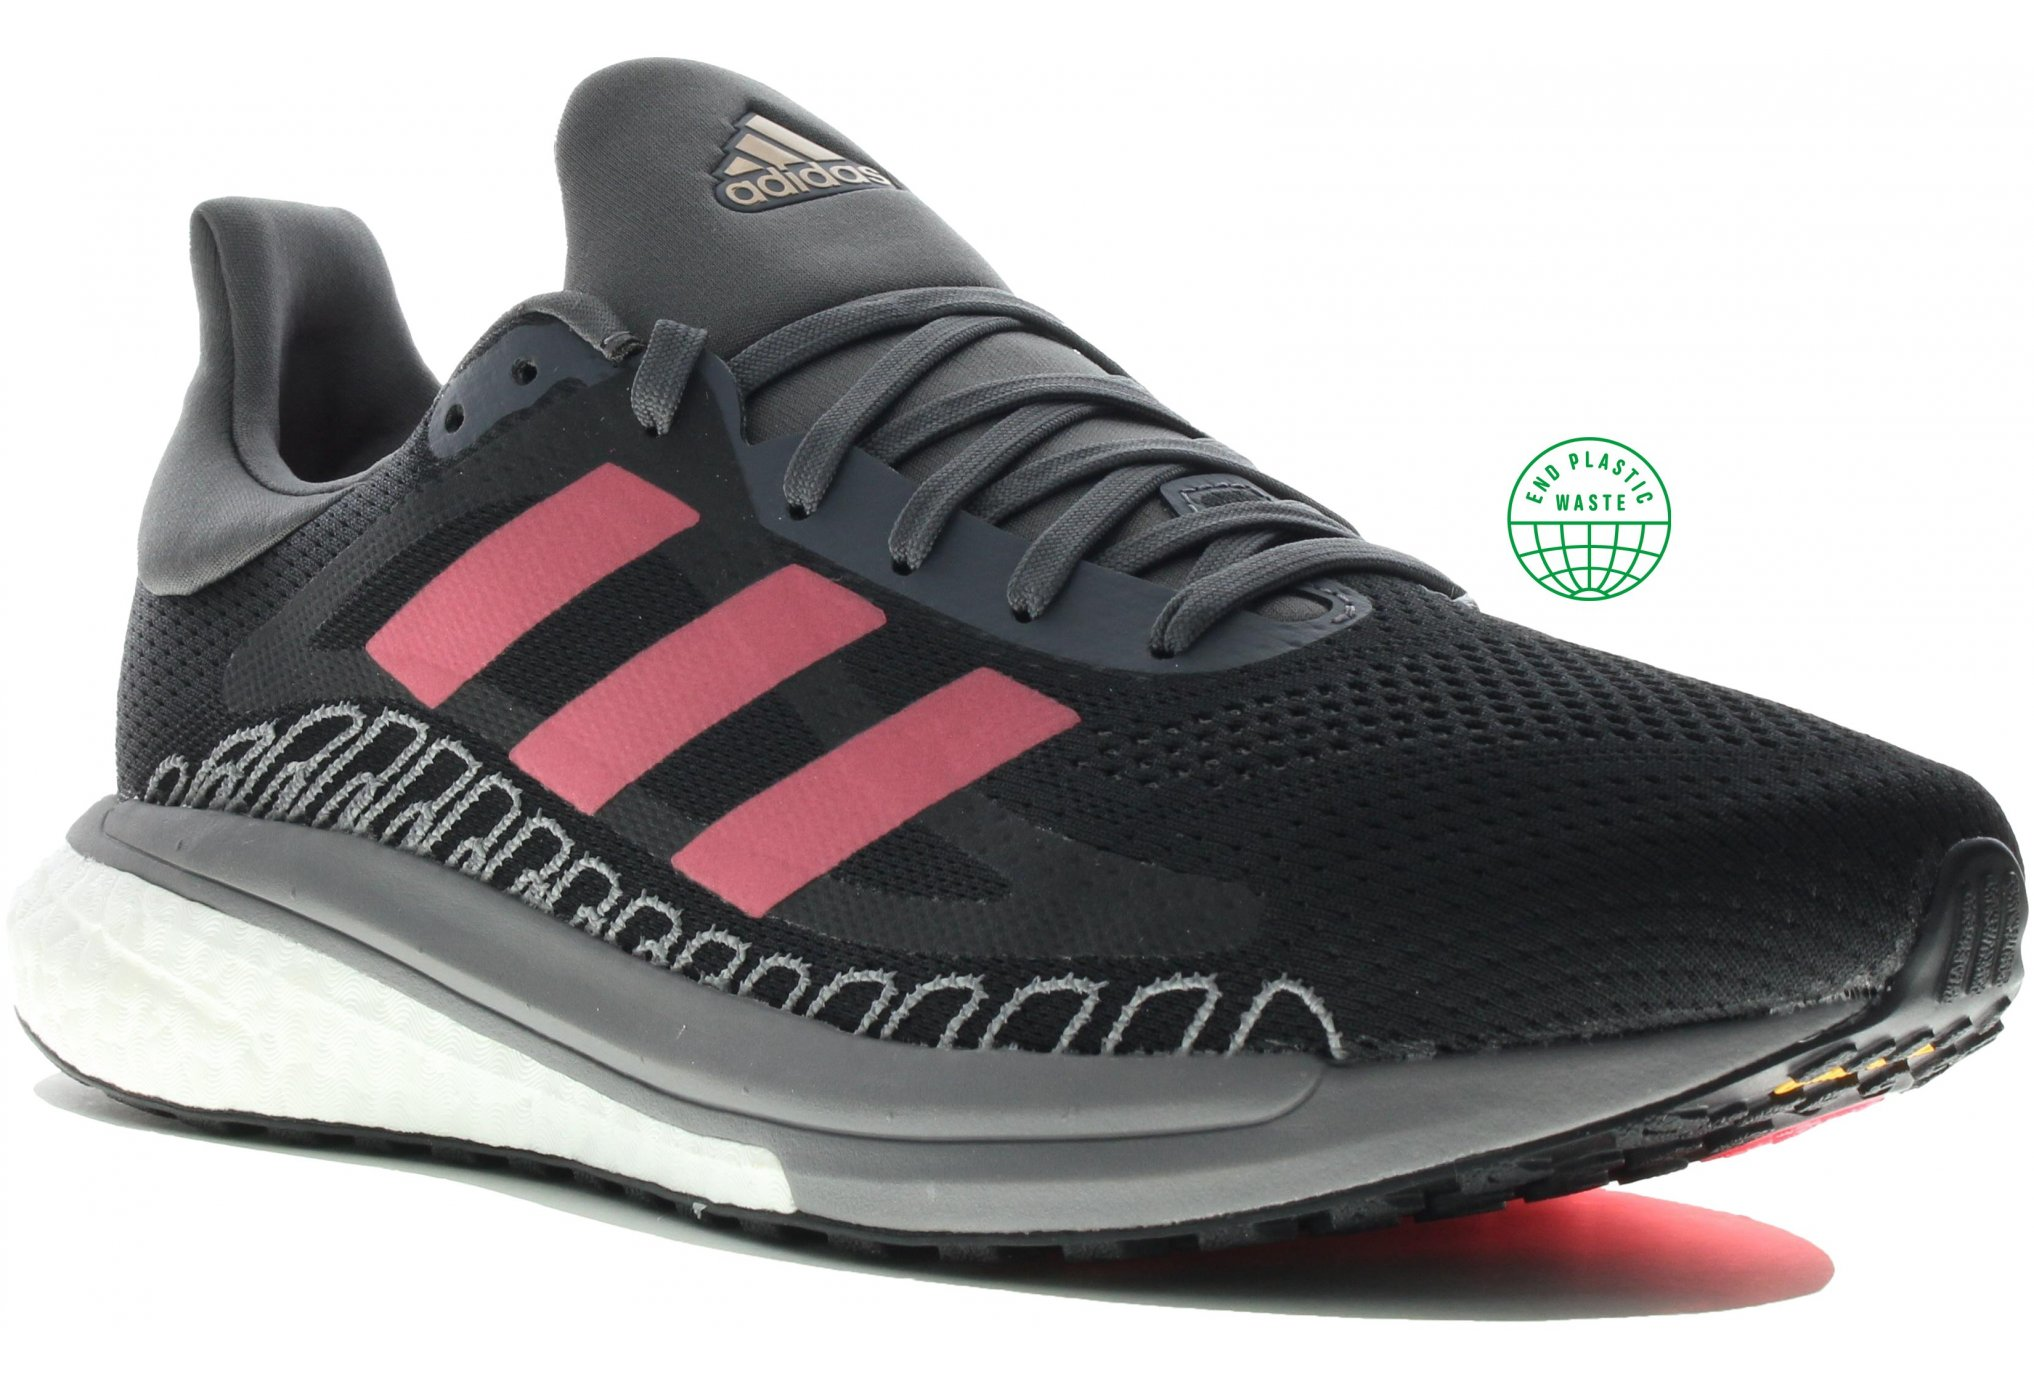 adidas Solar Glide ST 3 Primegreen Chaussures homme